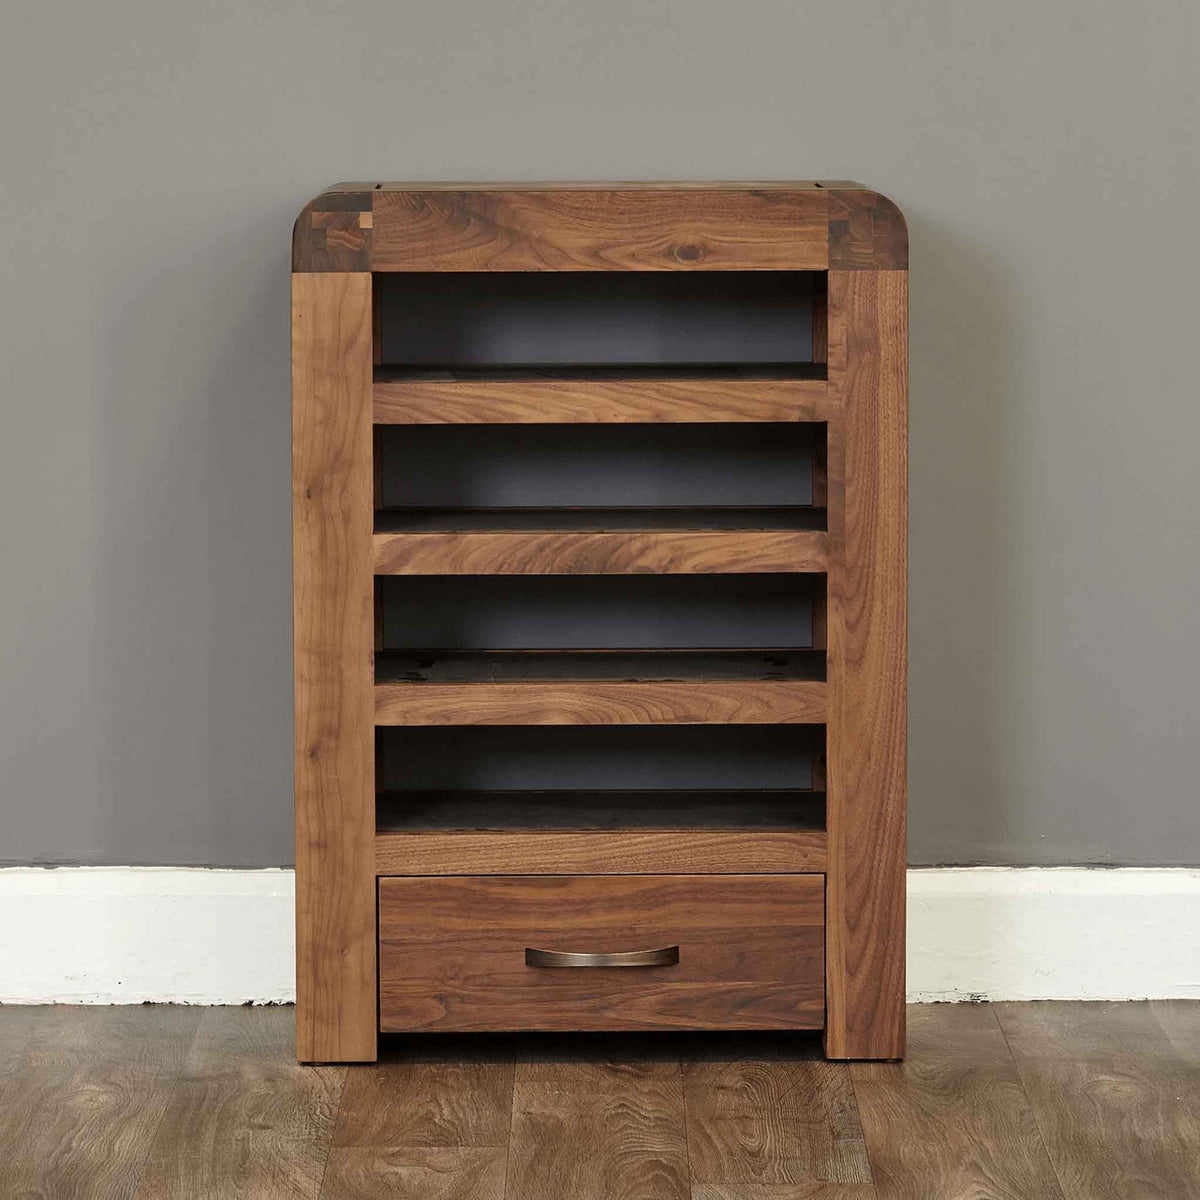 The Salem Walnut Wooden Entertainment Unit with Drawer from Roseland Furniture